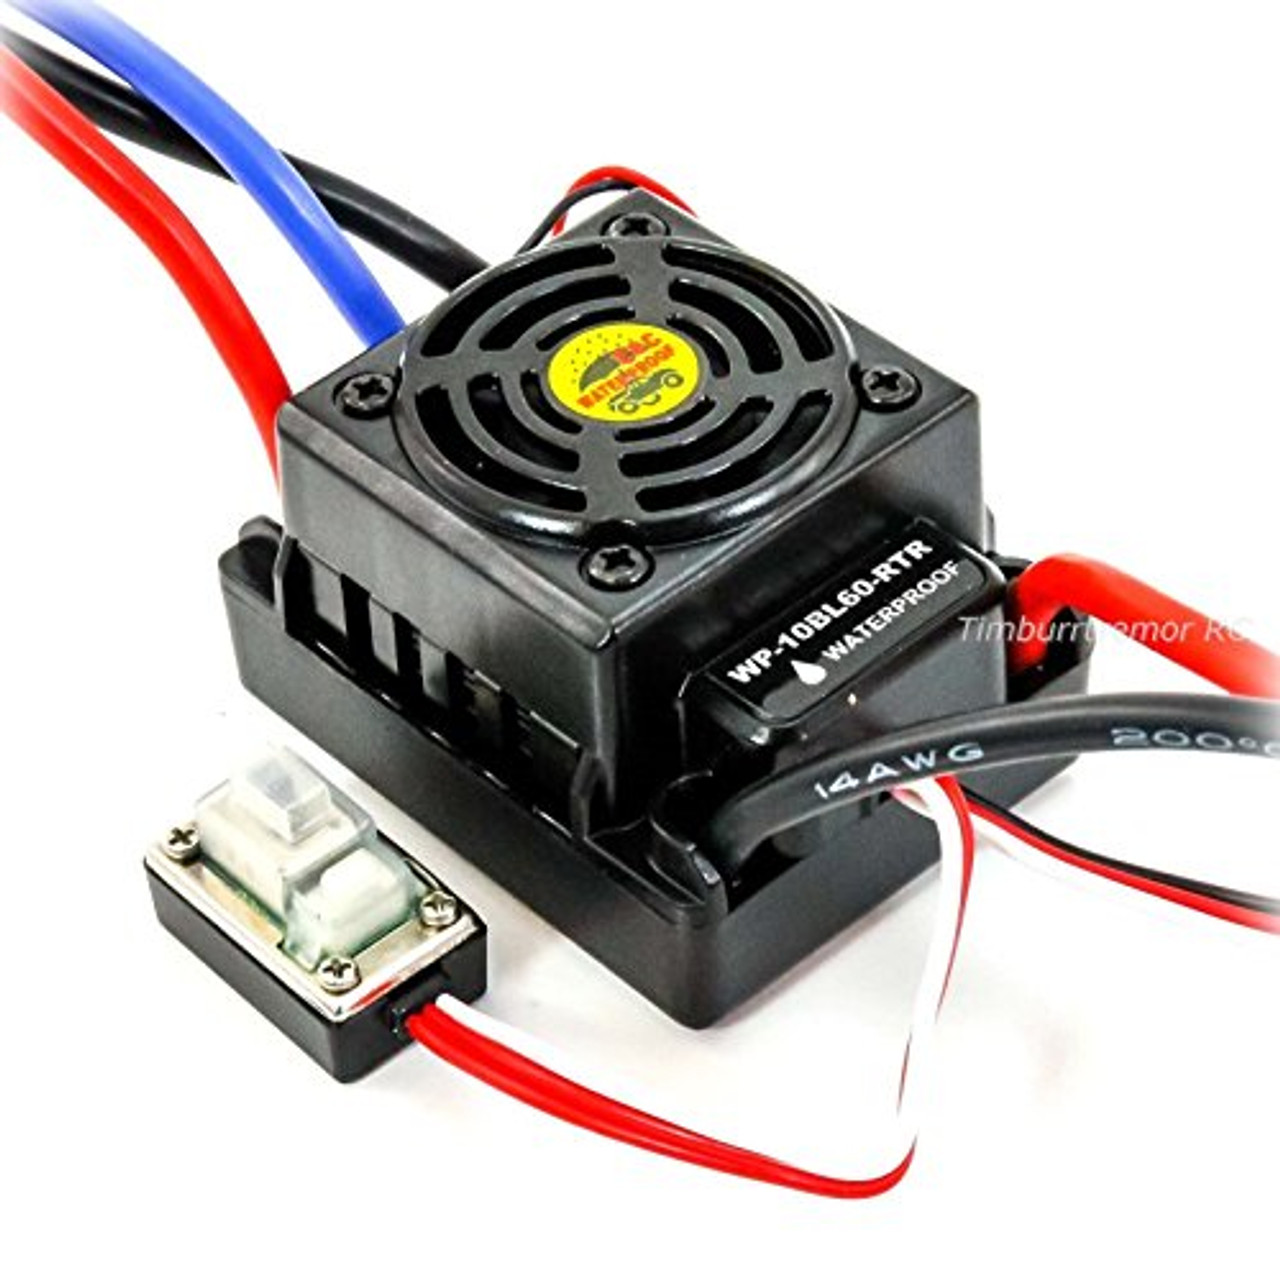 hight resolution of hobbywing 60a waterproof esc brushless for hsp bsd